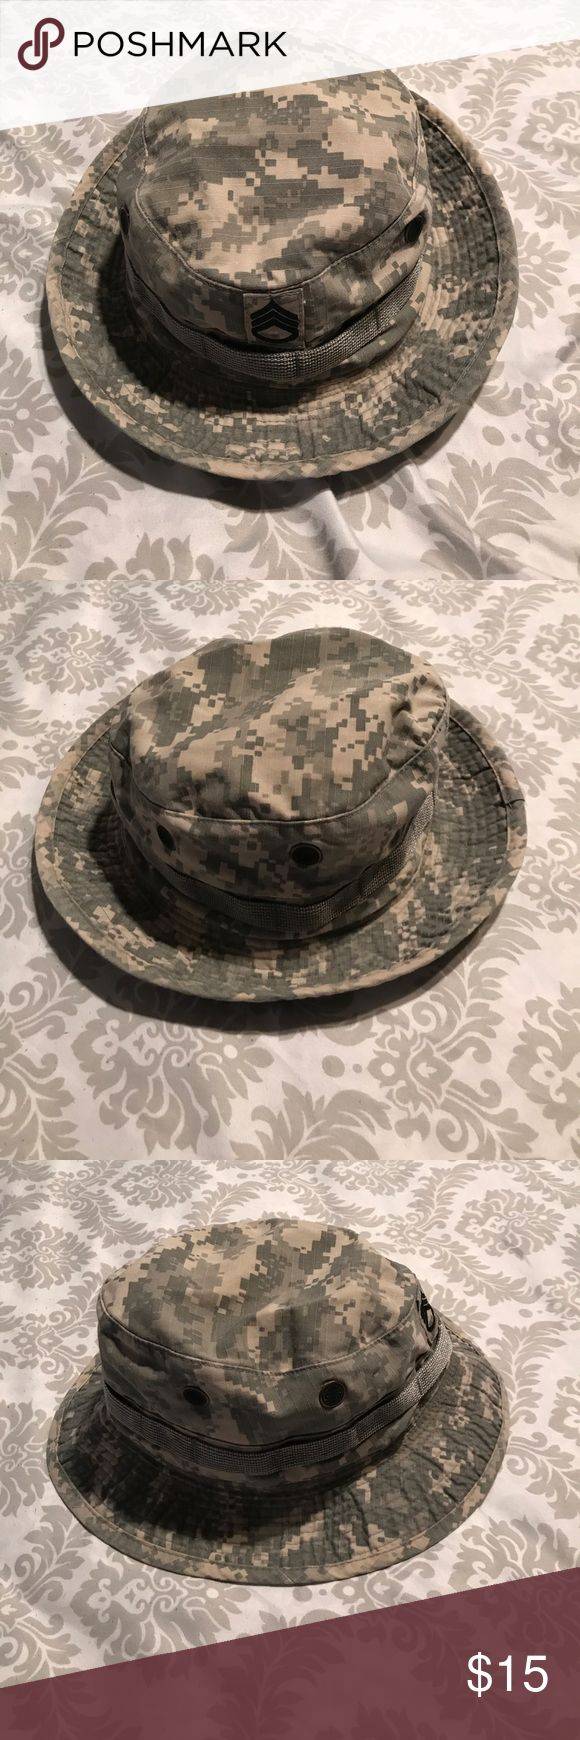 Army Issued Bonnie Cap, ACU pattern. Used Authentic Army Issued Bonnie Cap, ACU pattern (Hat, Sun, Army Combat Uniform). Unisex cap. EUC. Size 7, even though missing size tag. Without chin strap. With Staff Sergeant rank sewn on in the front of cap. Bernard Cap Co., Inc. Accessories Hats